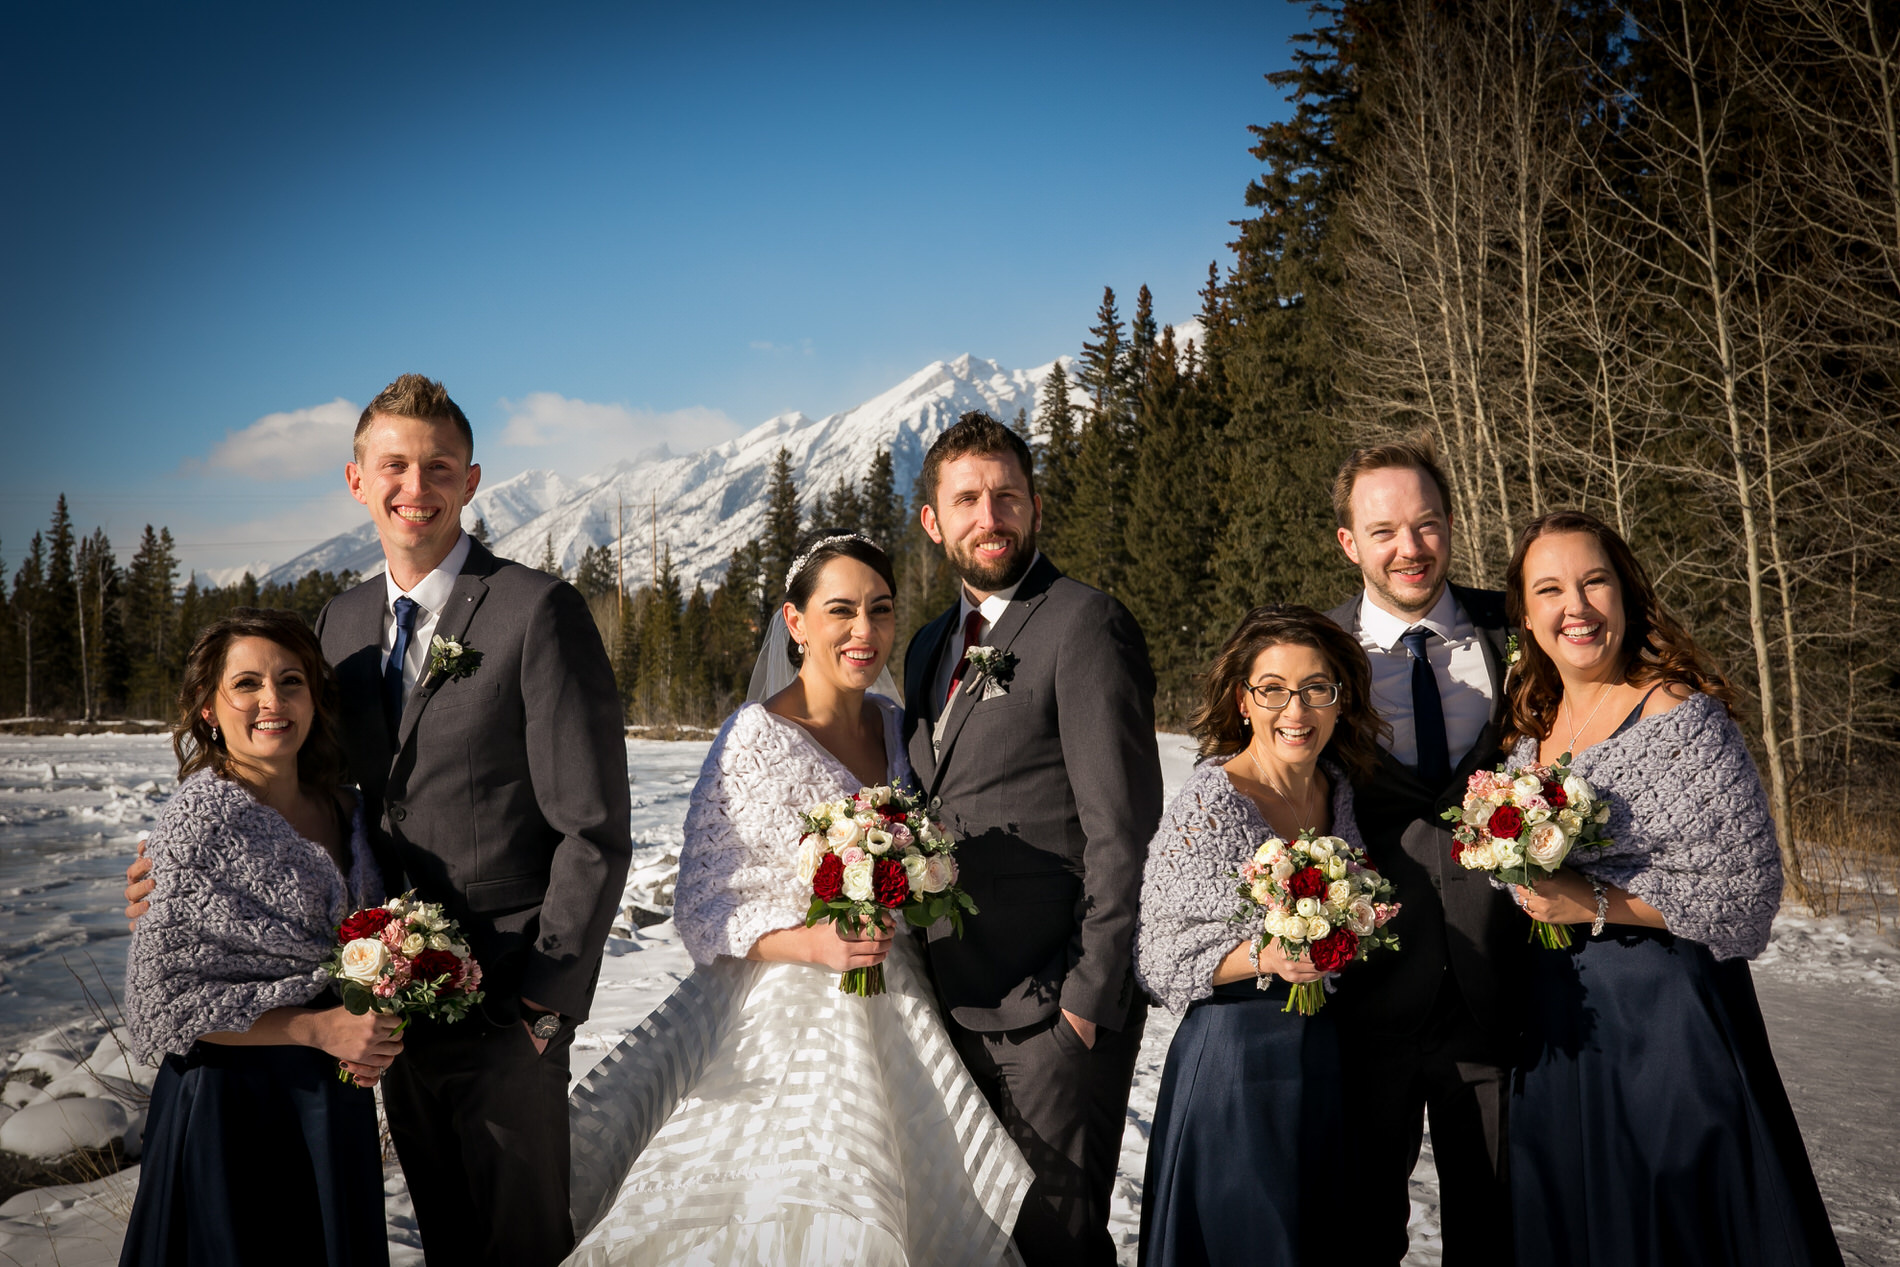 Sherri and Kyle Bridal Party 106.jpg